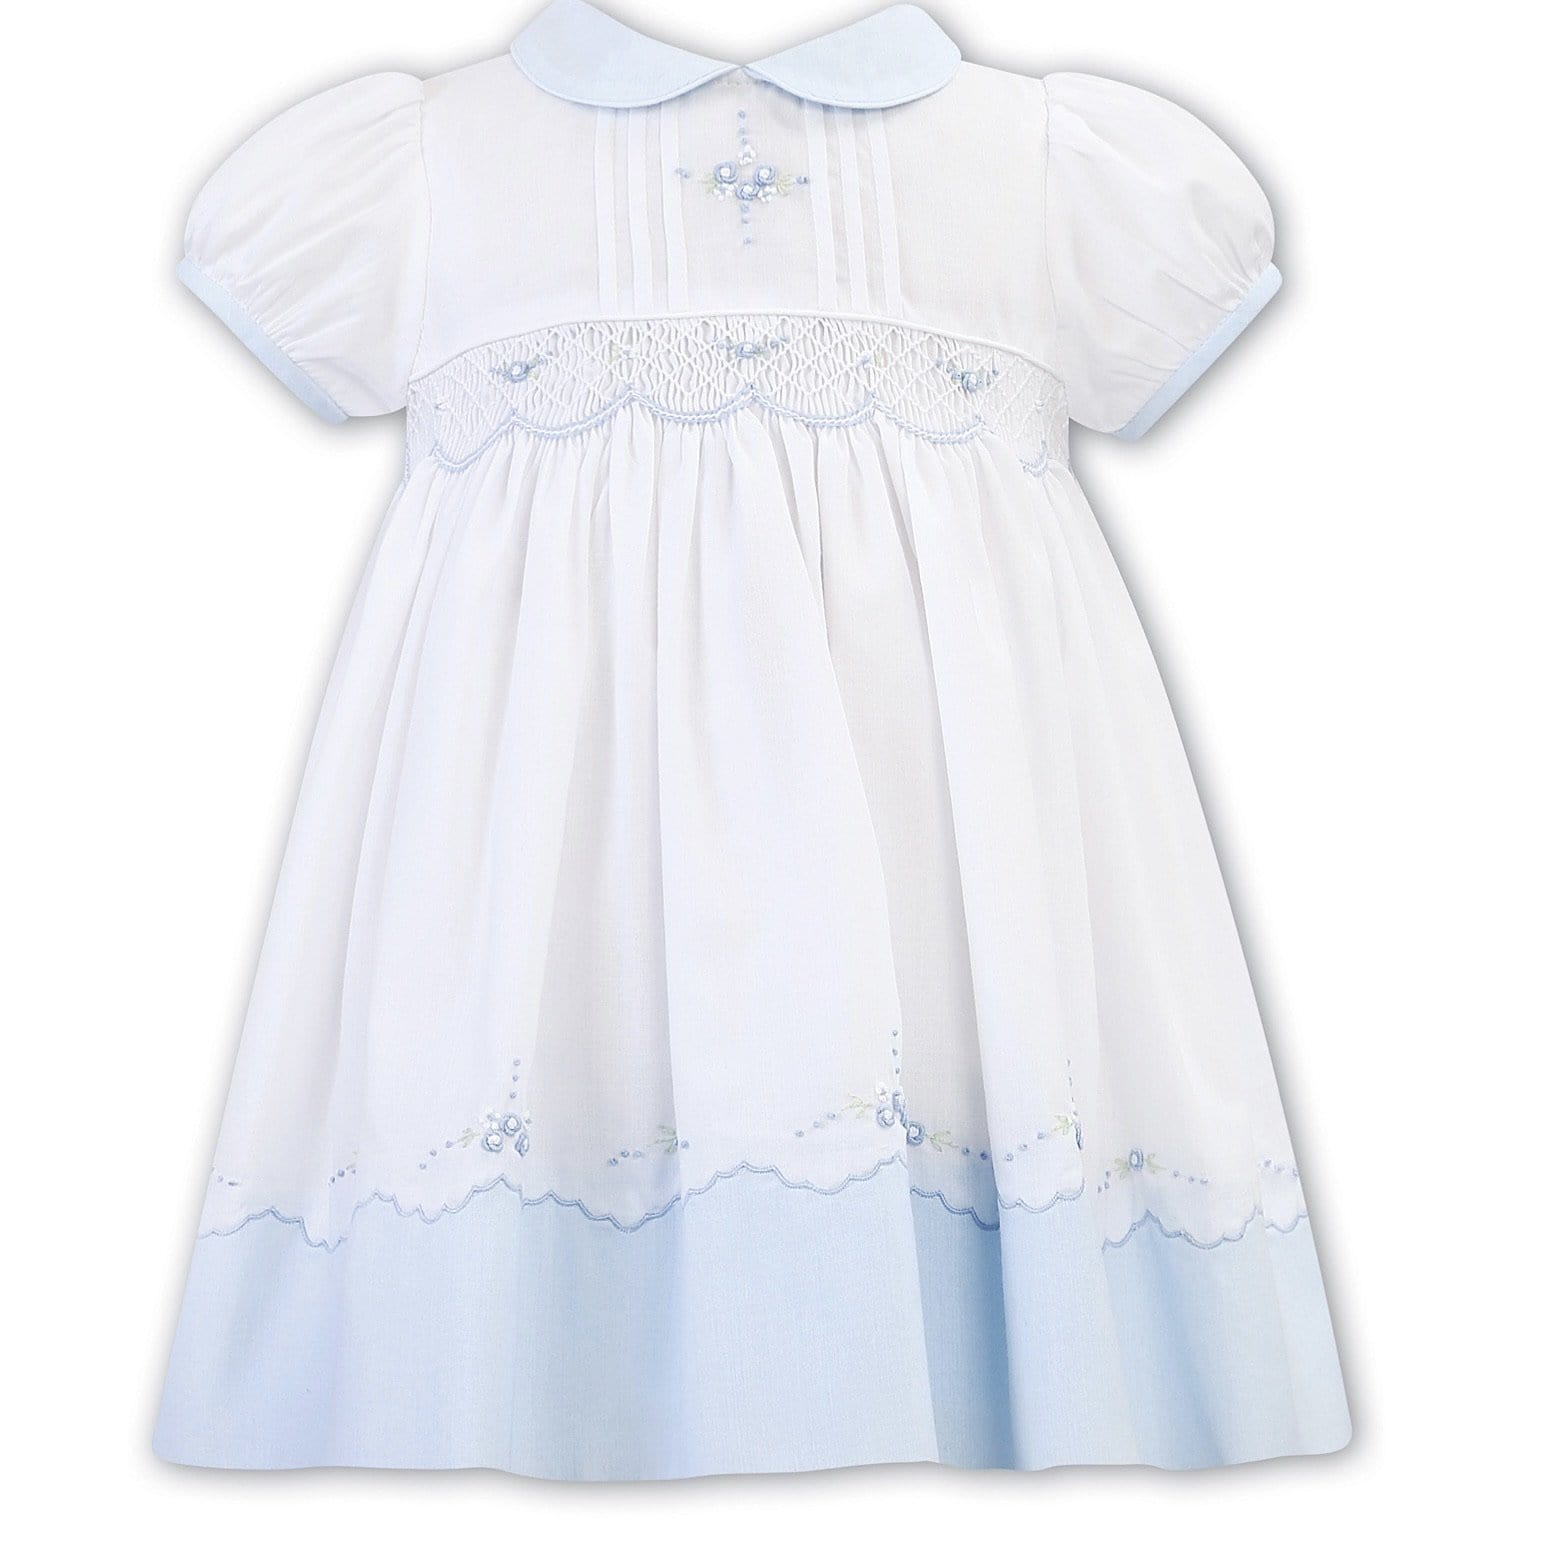 SARAH LOUISE  WHITE WITH BLUE SMOCKED DRESS WINTER